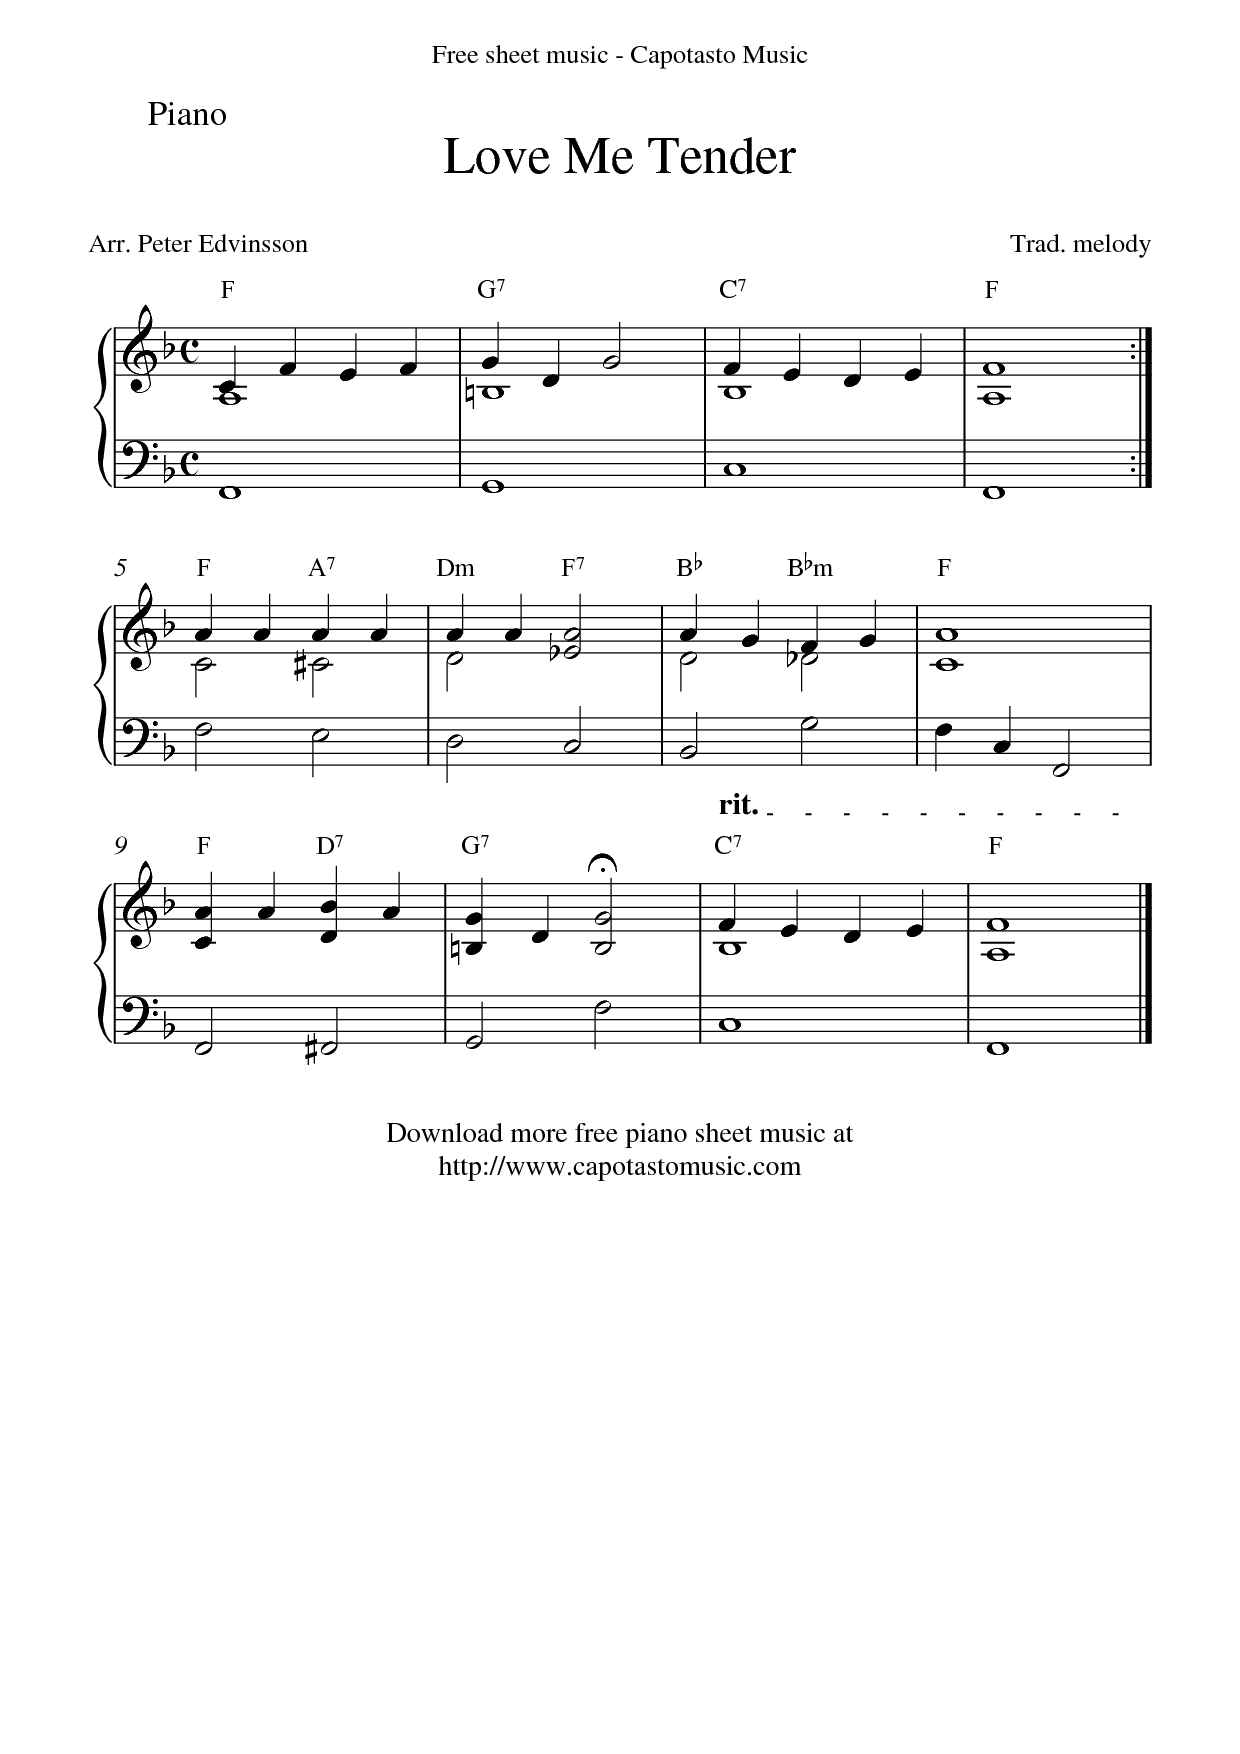 piano - Why do we use such complicated notation? - Music: Practice ...